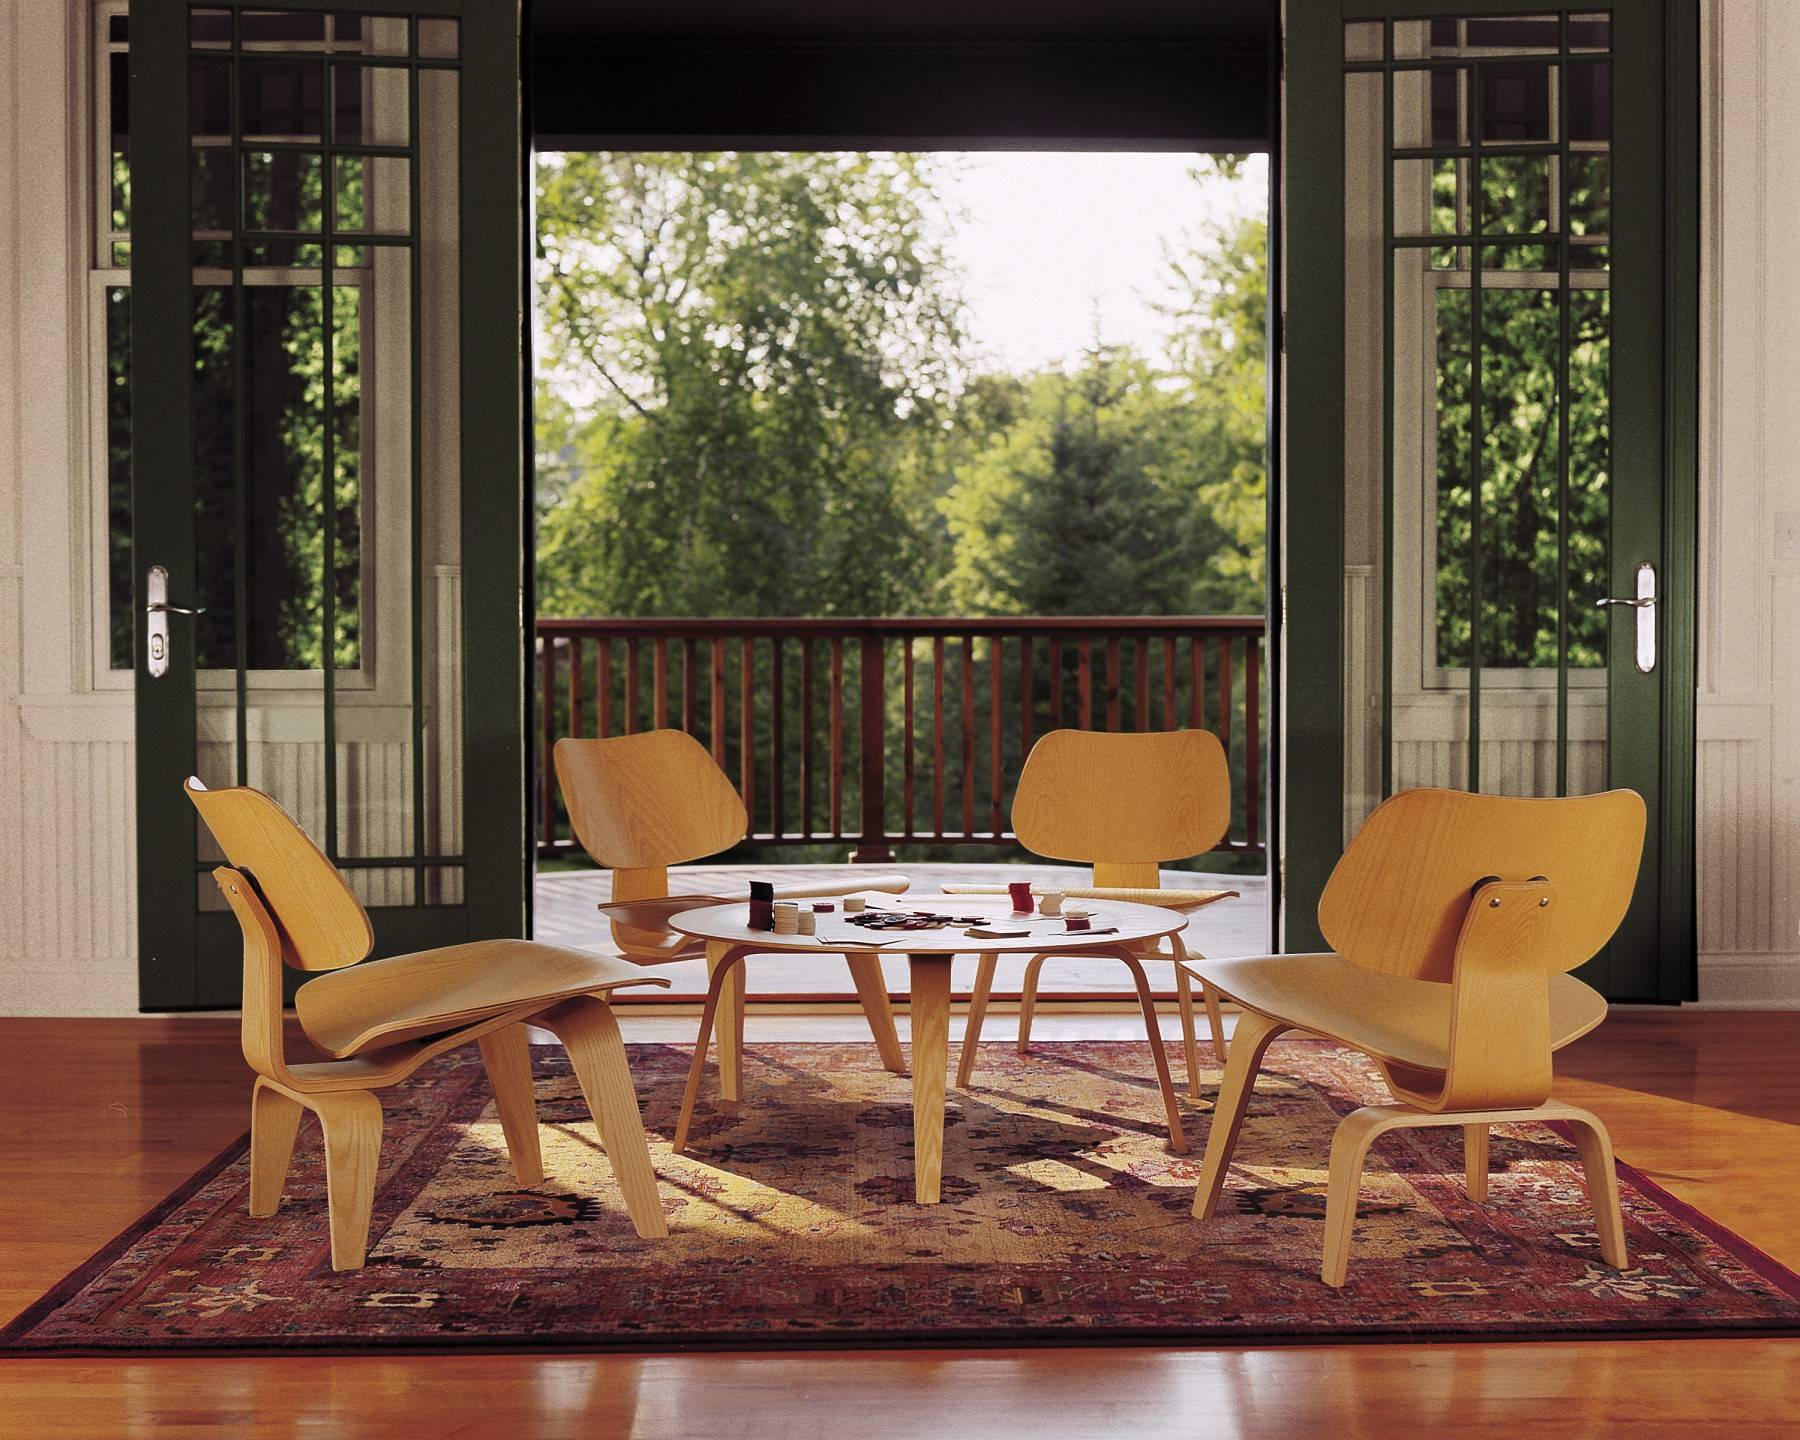 Eames plywood desk chair - 1